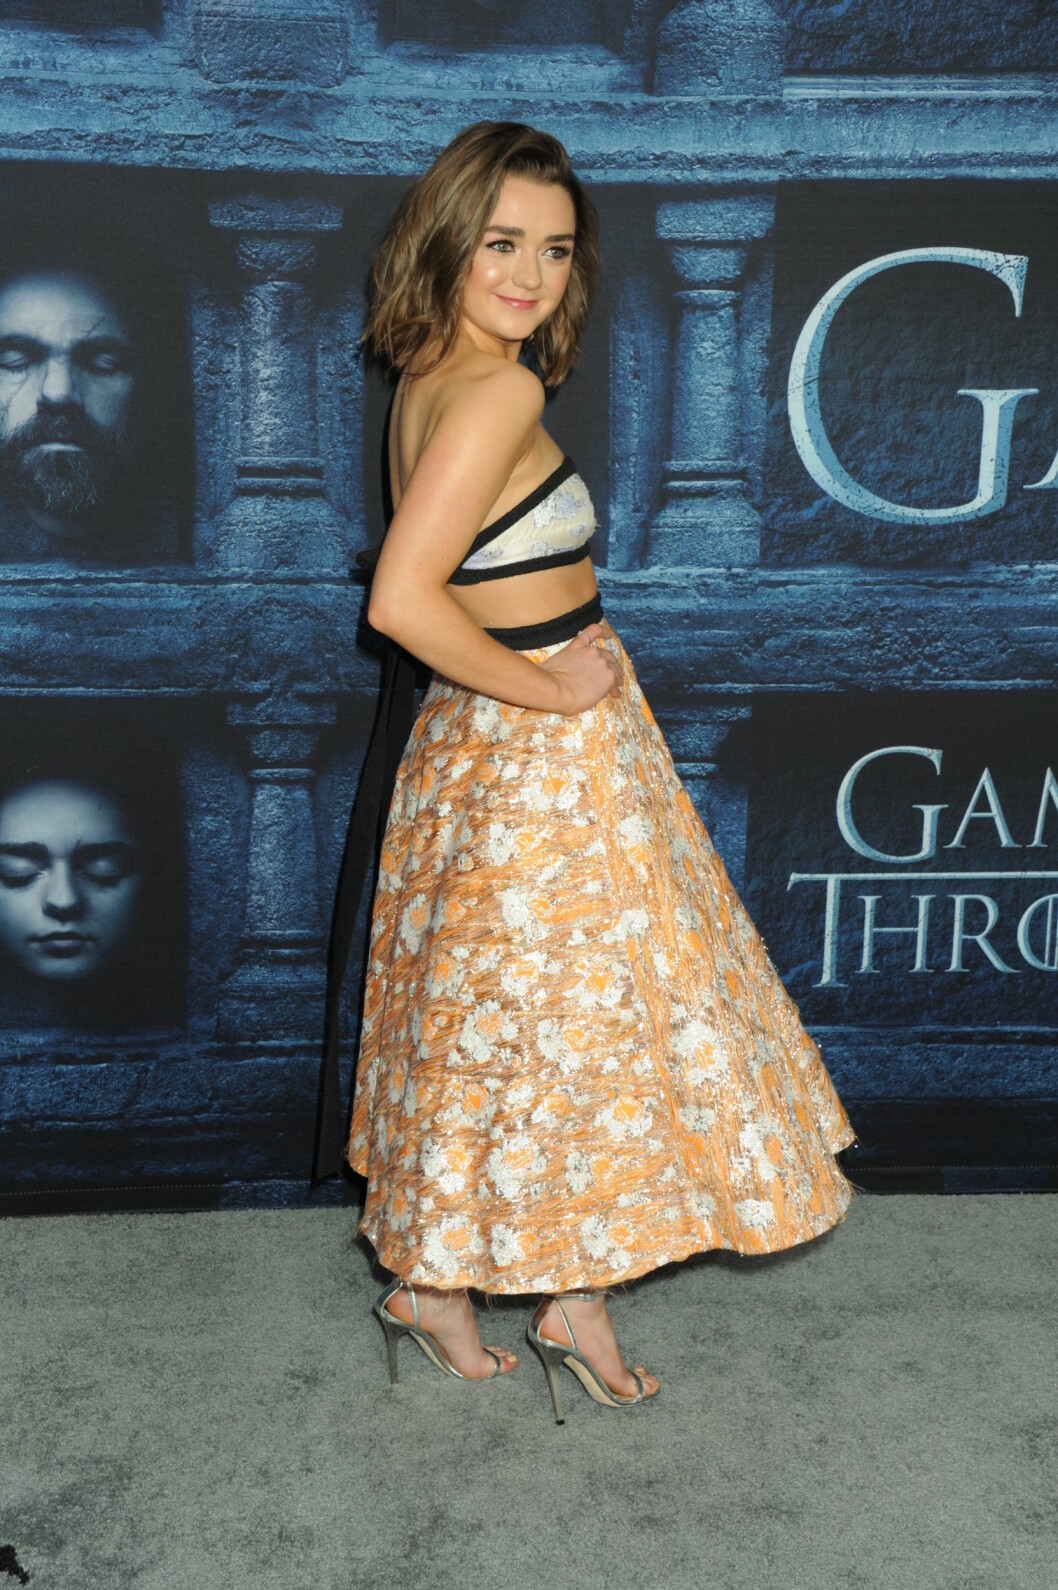 Maisie deltar på HBOs Game of Thrones sesong 6 premiere.  Foto: SipaUSA